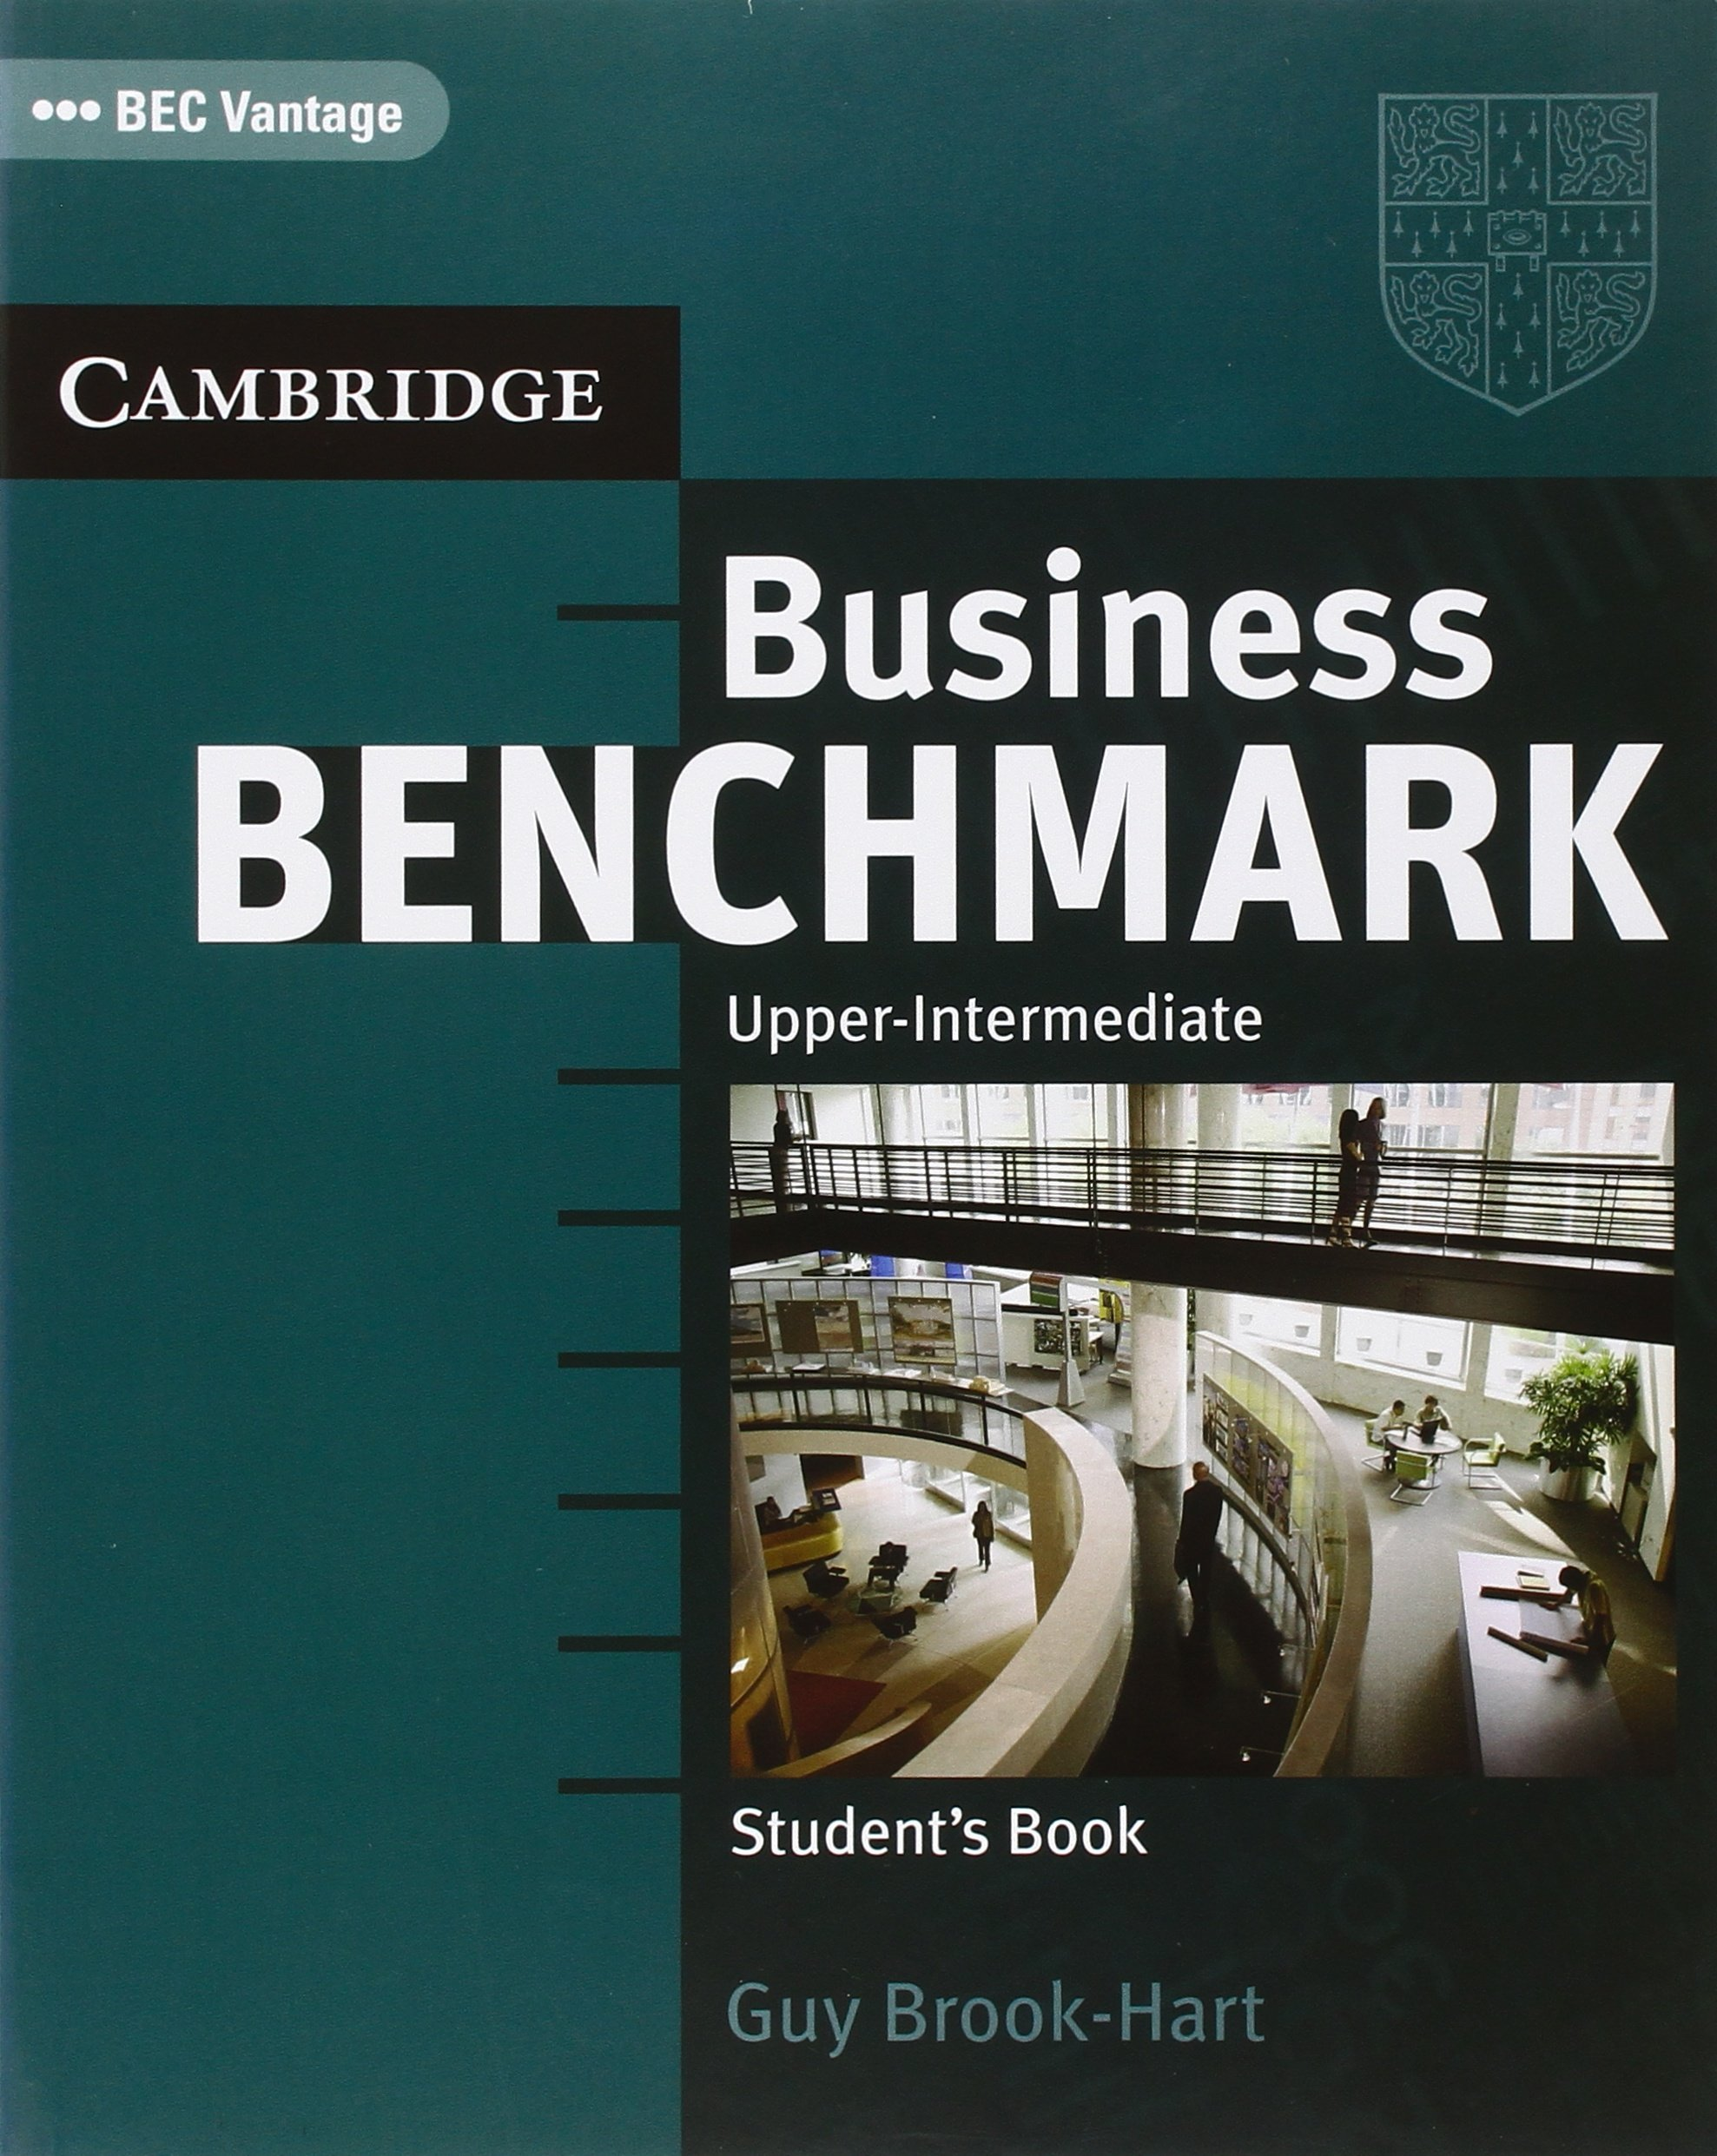 Business Benchmark Upper Intermediate Student's Book BEC Edition:  Amazon.de: Guy Brook-Hart: Fremdsprachige Bücher